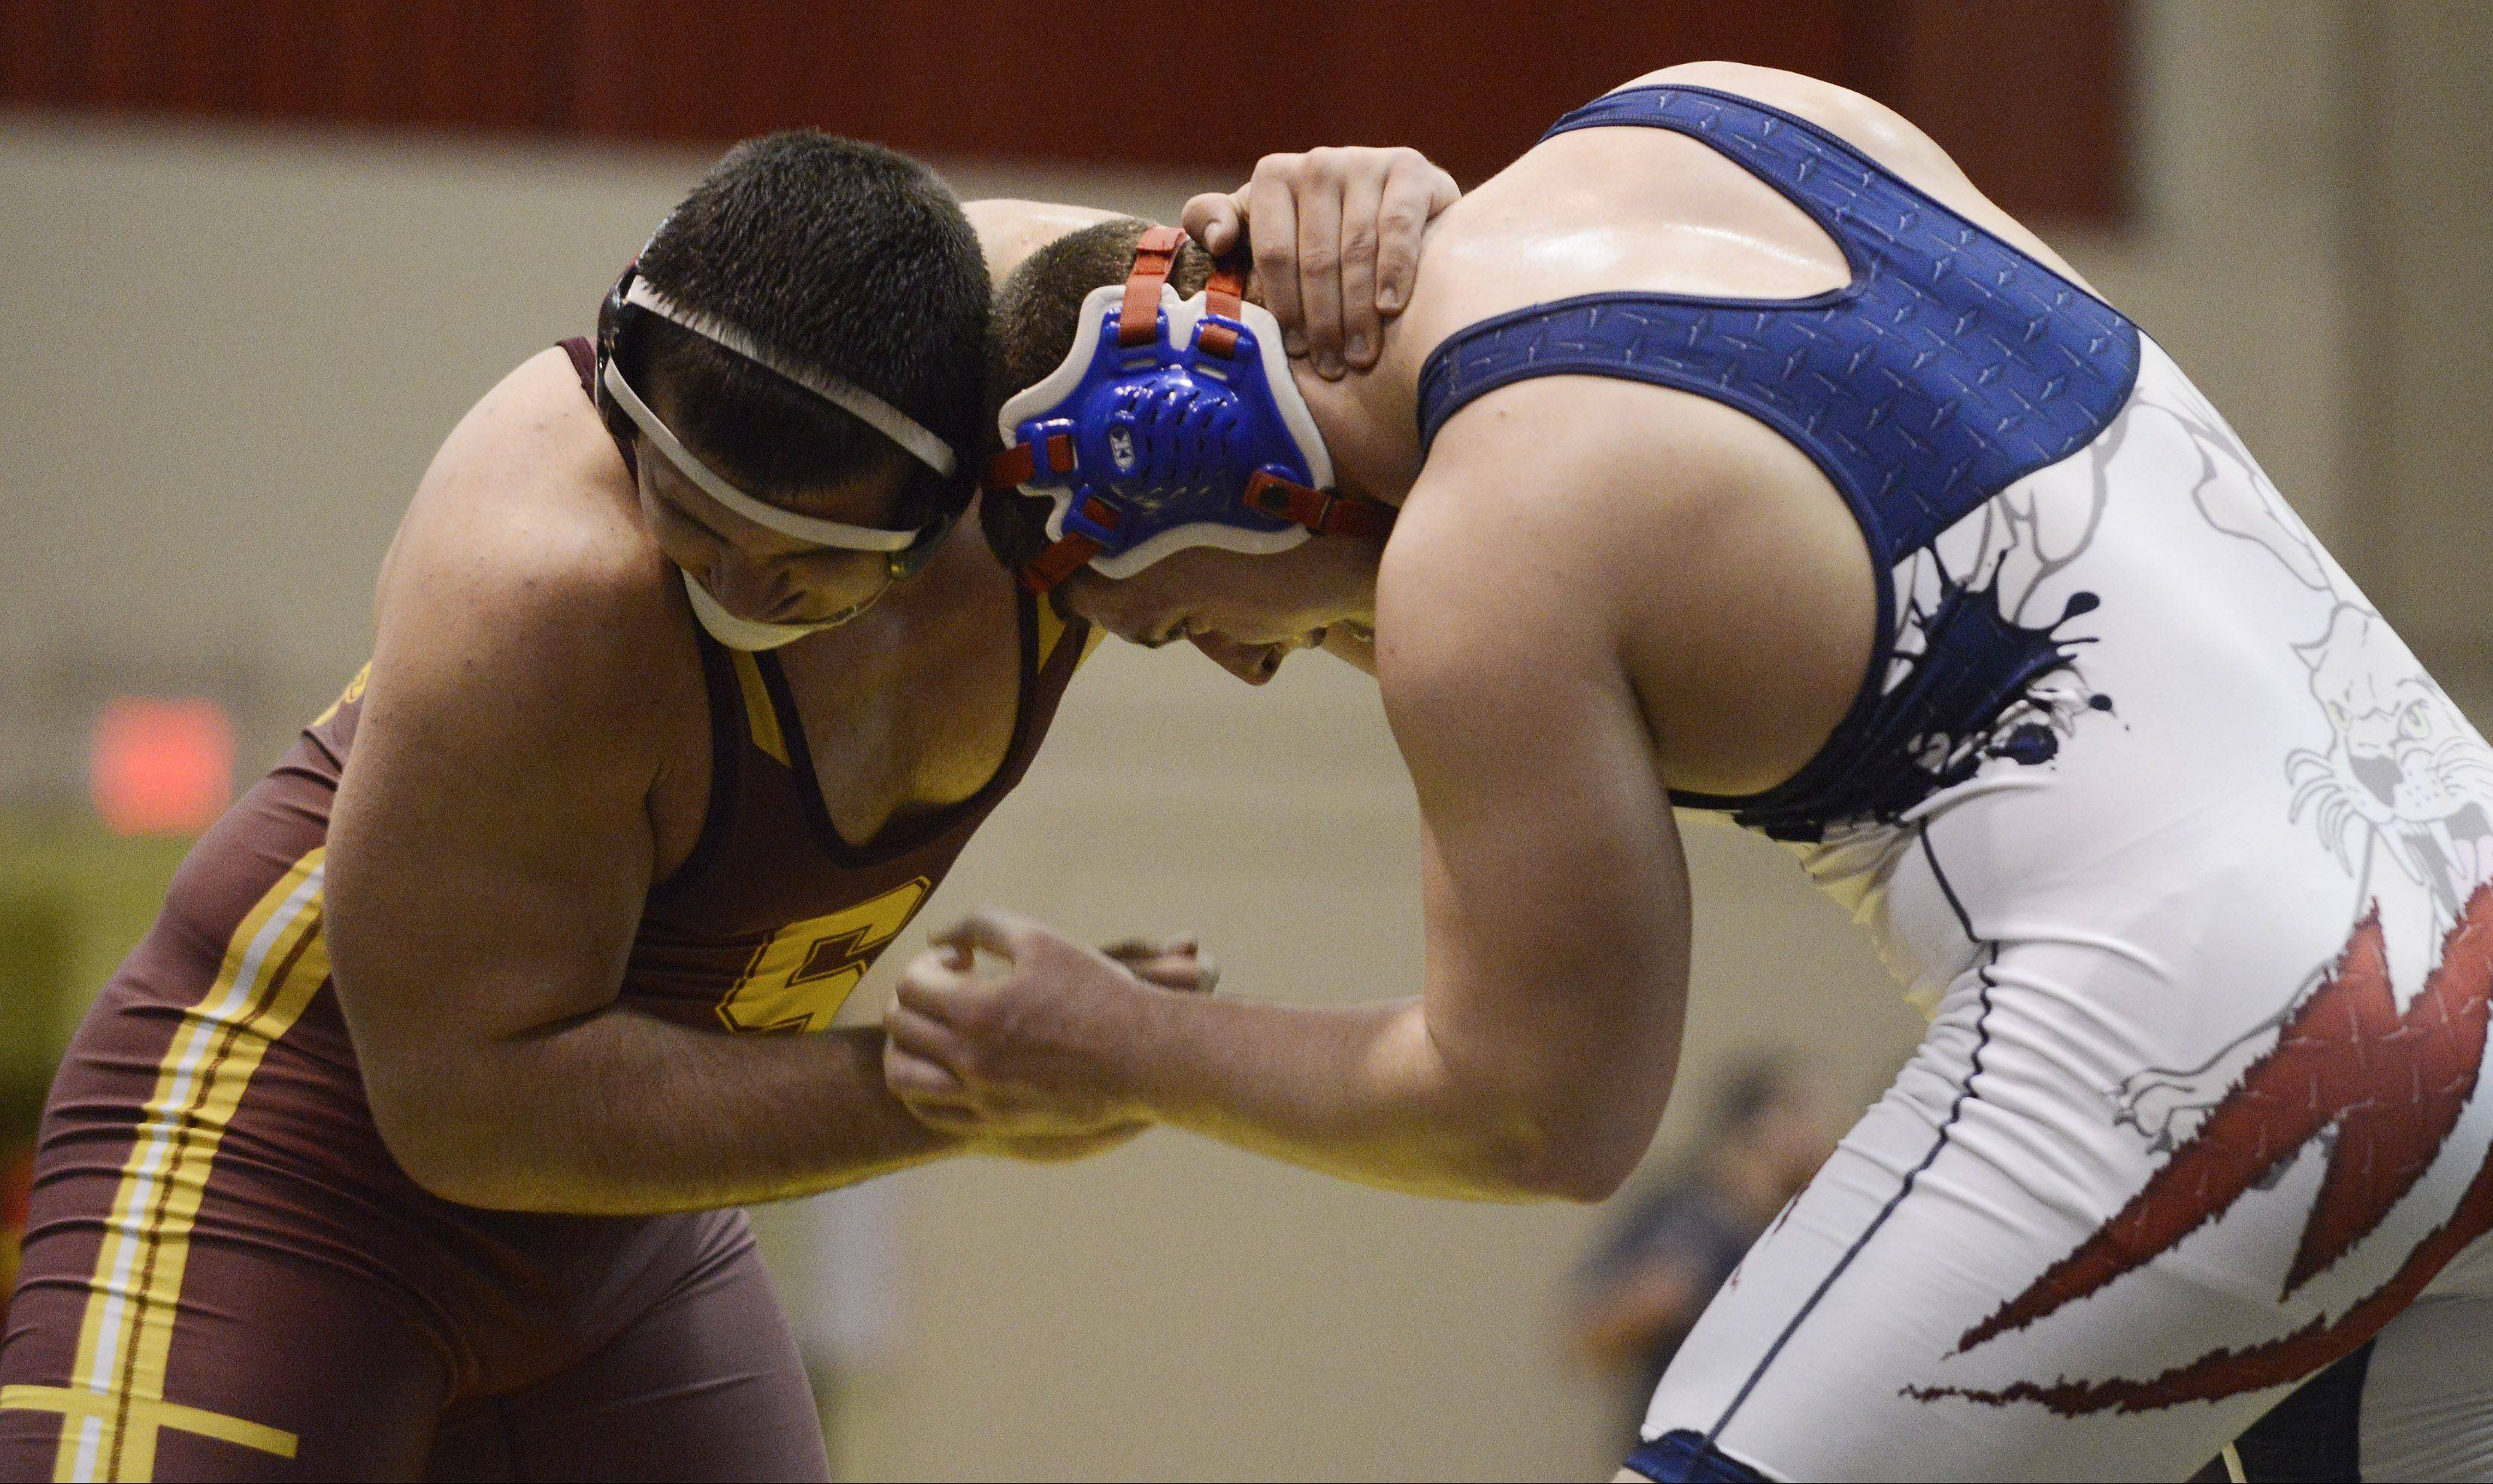 Conant's Tyler LaBarbera, right, wrestles toward a win against Schaumburg's Matt Zolper in the 285-pound championship match during the Schaumburg regional Saturday.